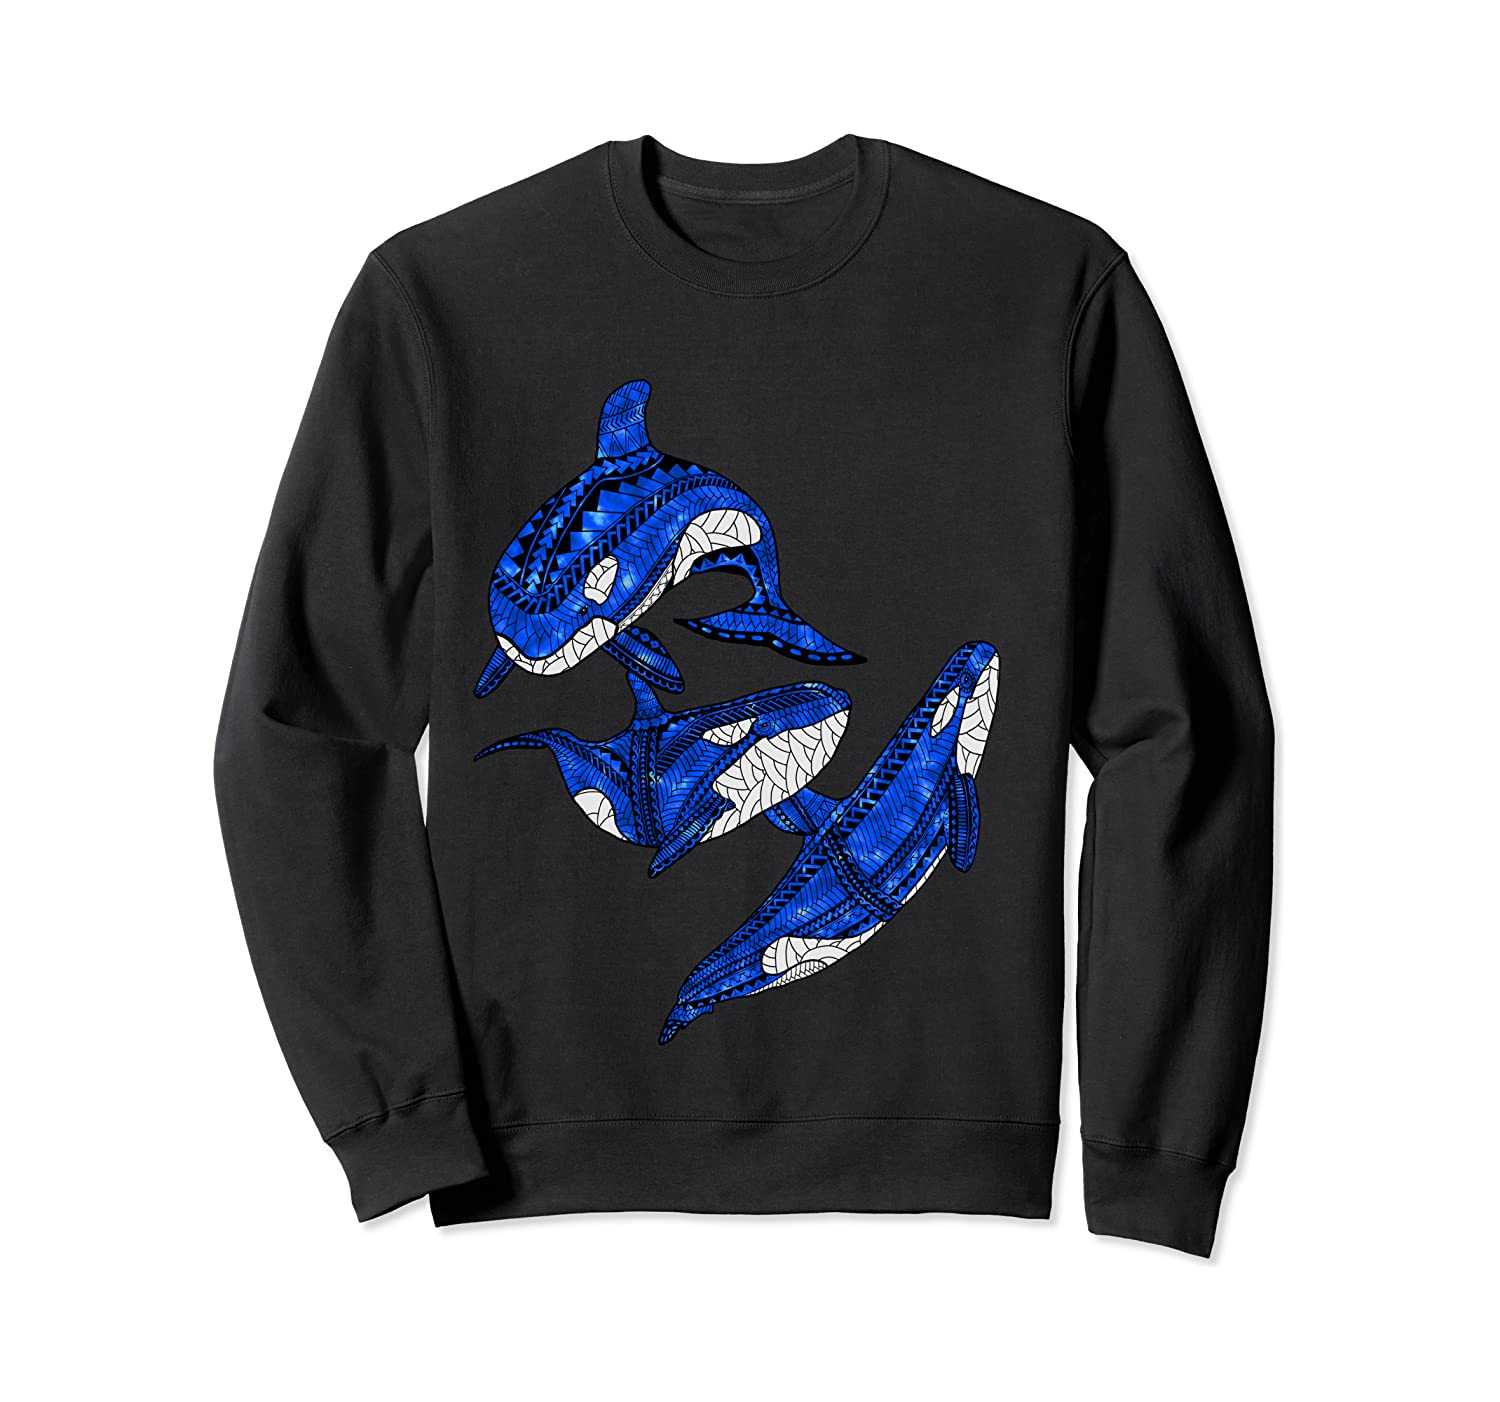 Pod Of Orca Whales T-shirt Crewneck Sweater